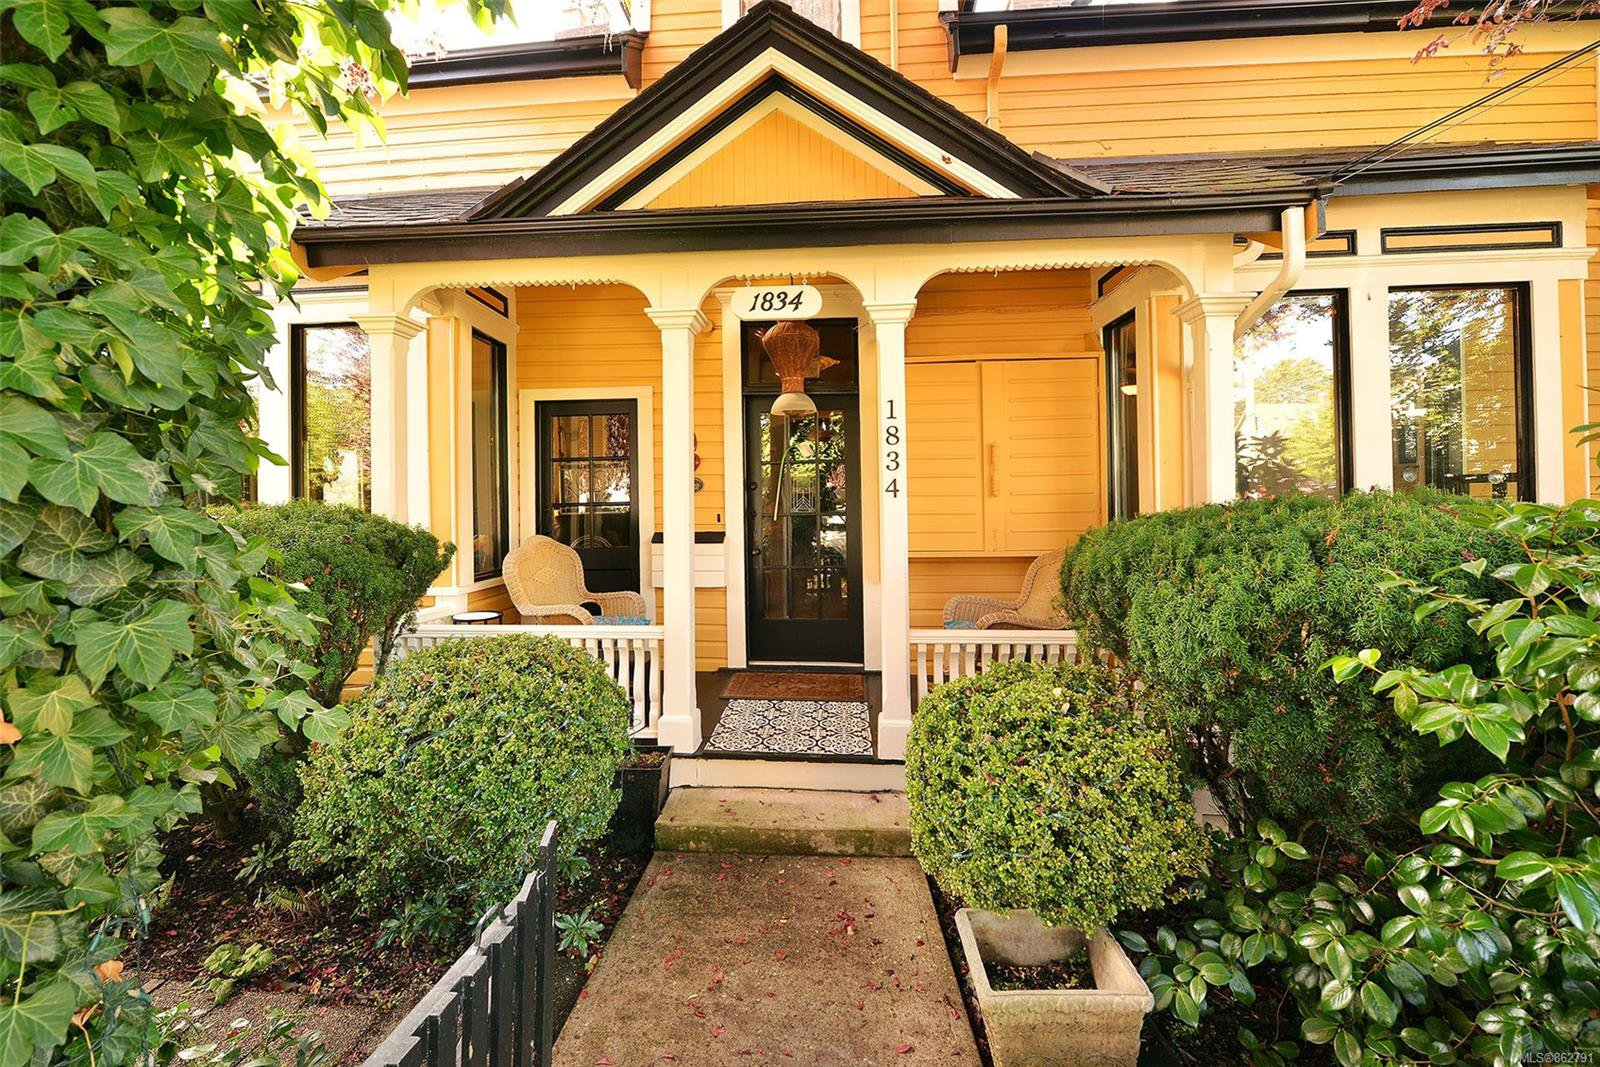 Main Photo: 1834 Stanley Ave in : Vi Fernwood Full Duplex for sale (Victoria)  : MLS®# 862791